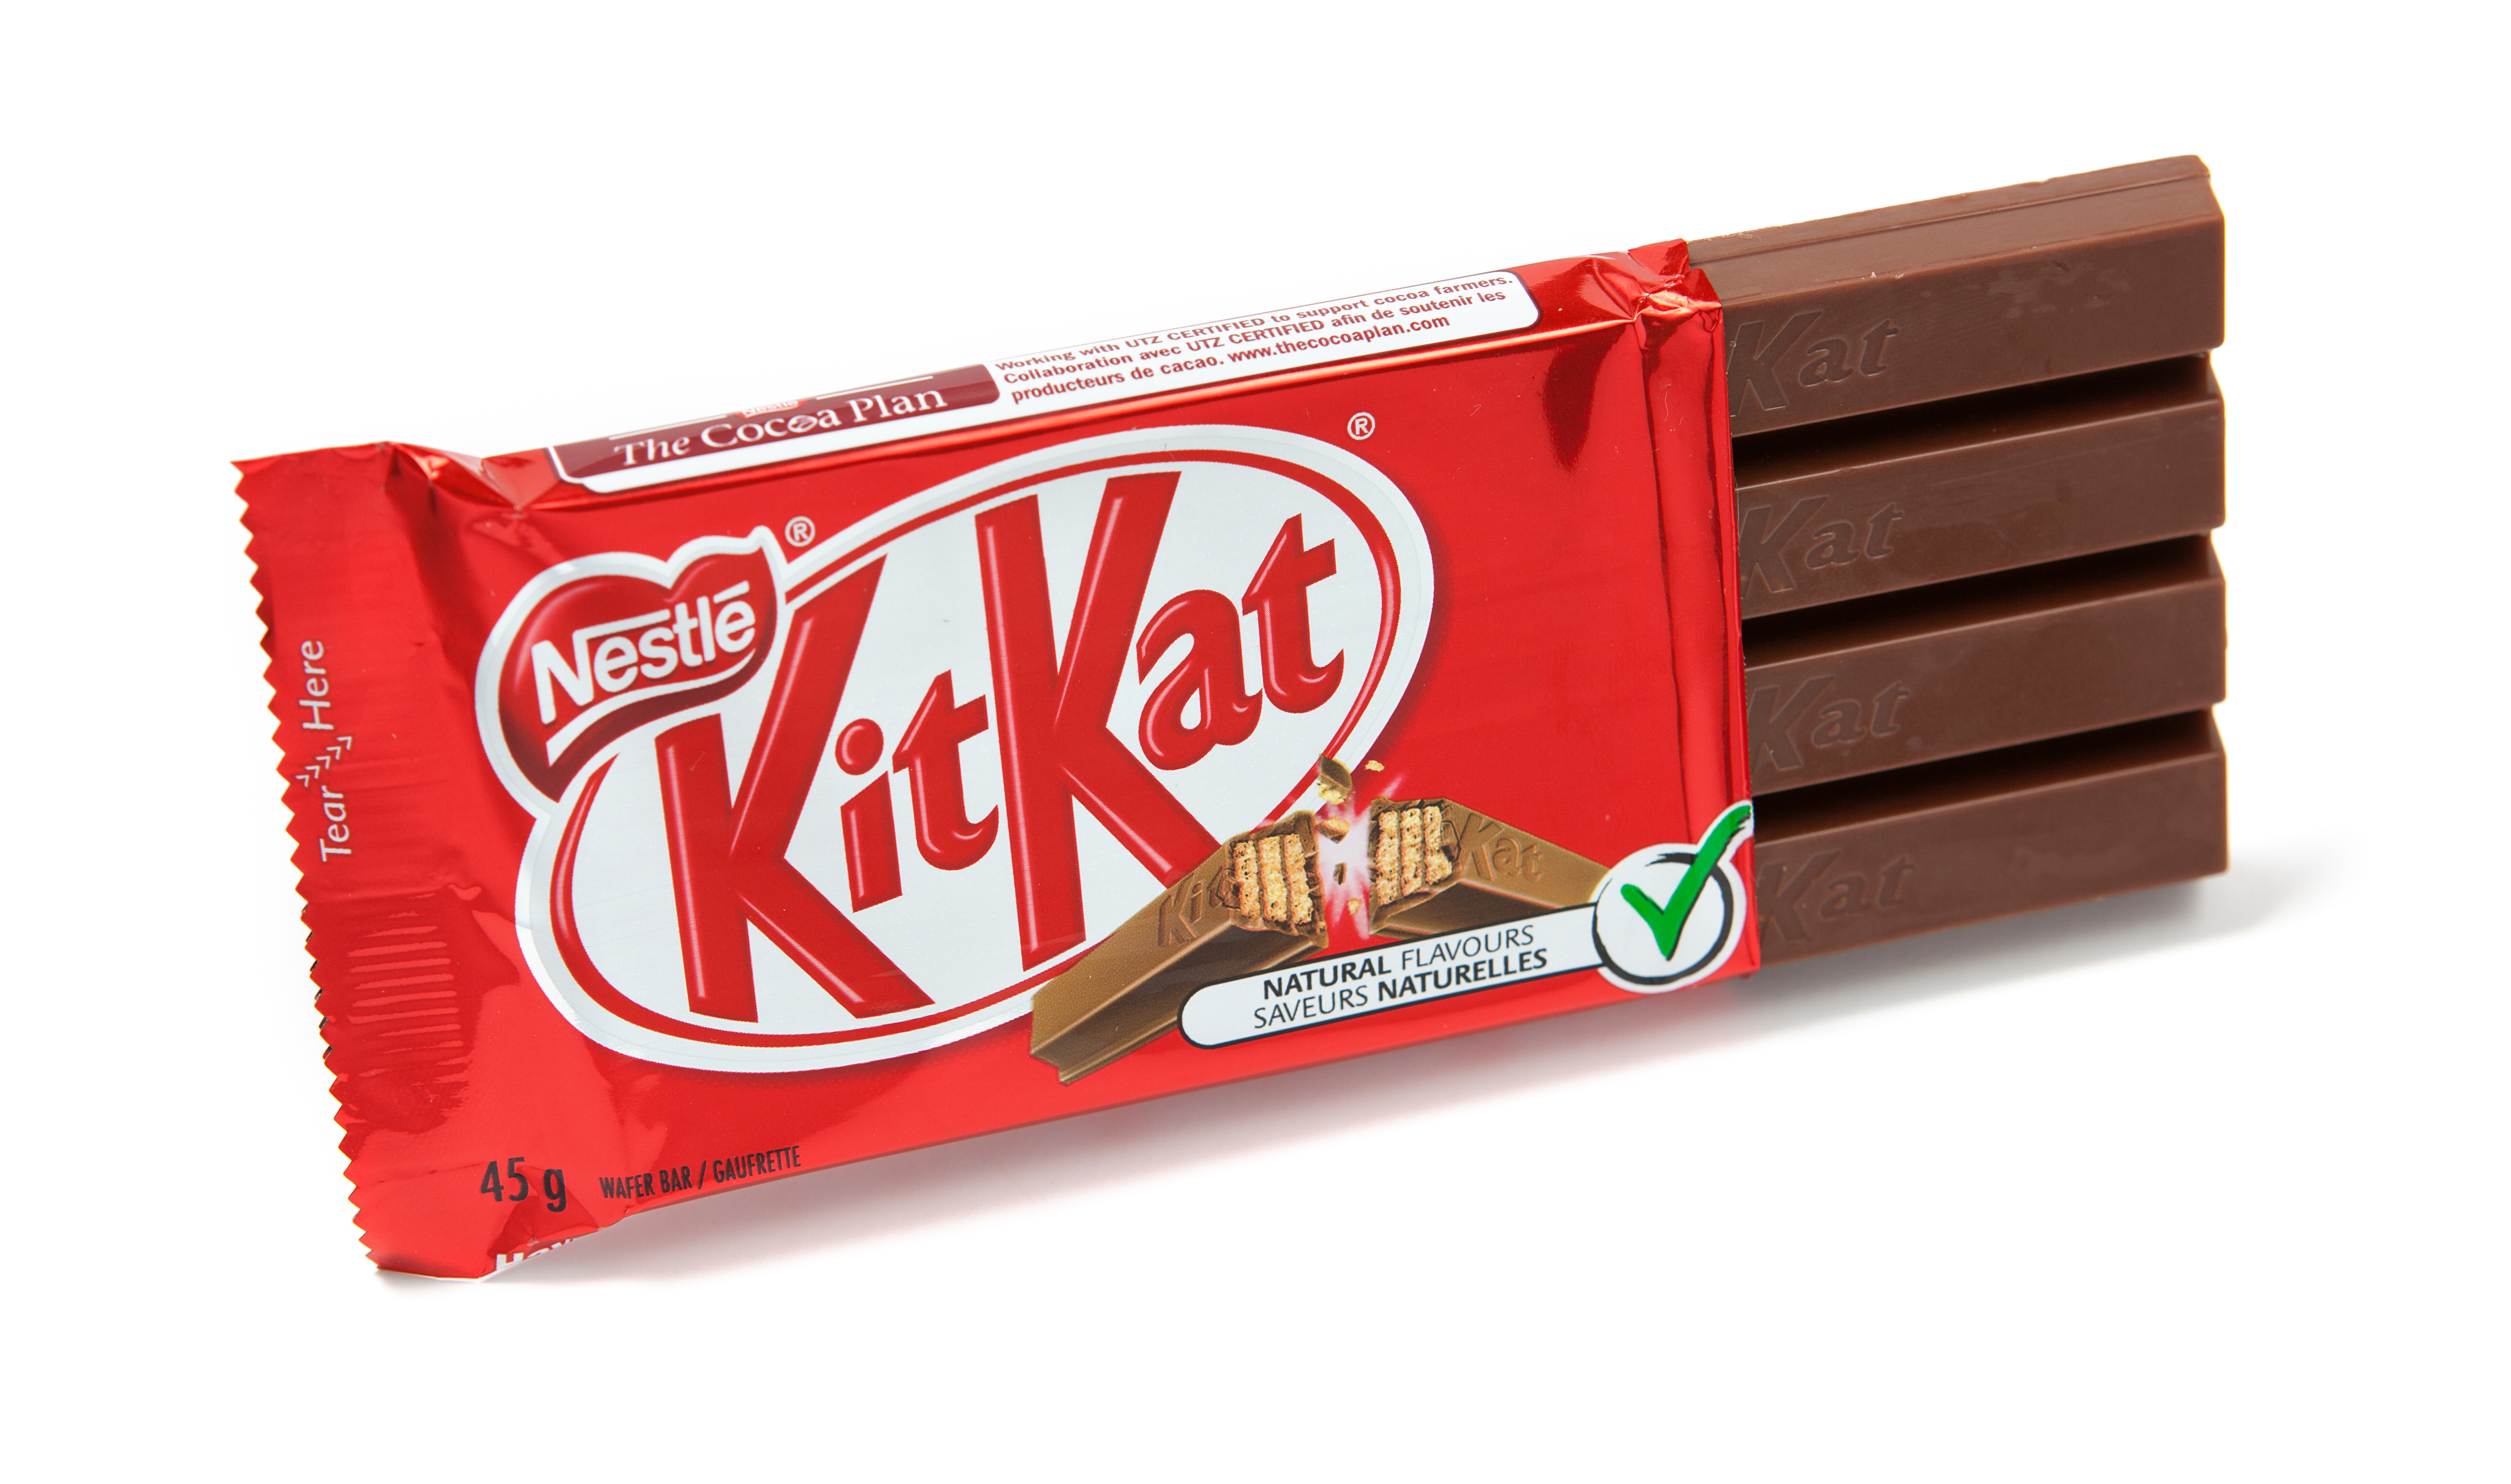 Toronto, Canada - May 10, 2012: This is a studio shot of KitKat wafer bar candy made by Nestle isolated on a white background.